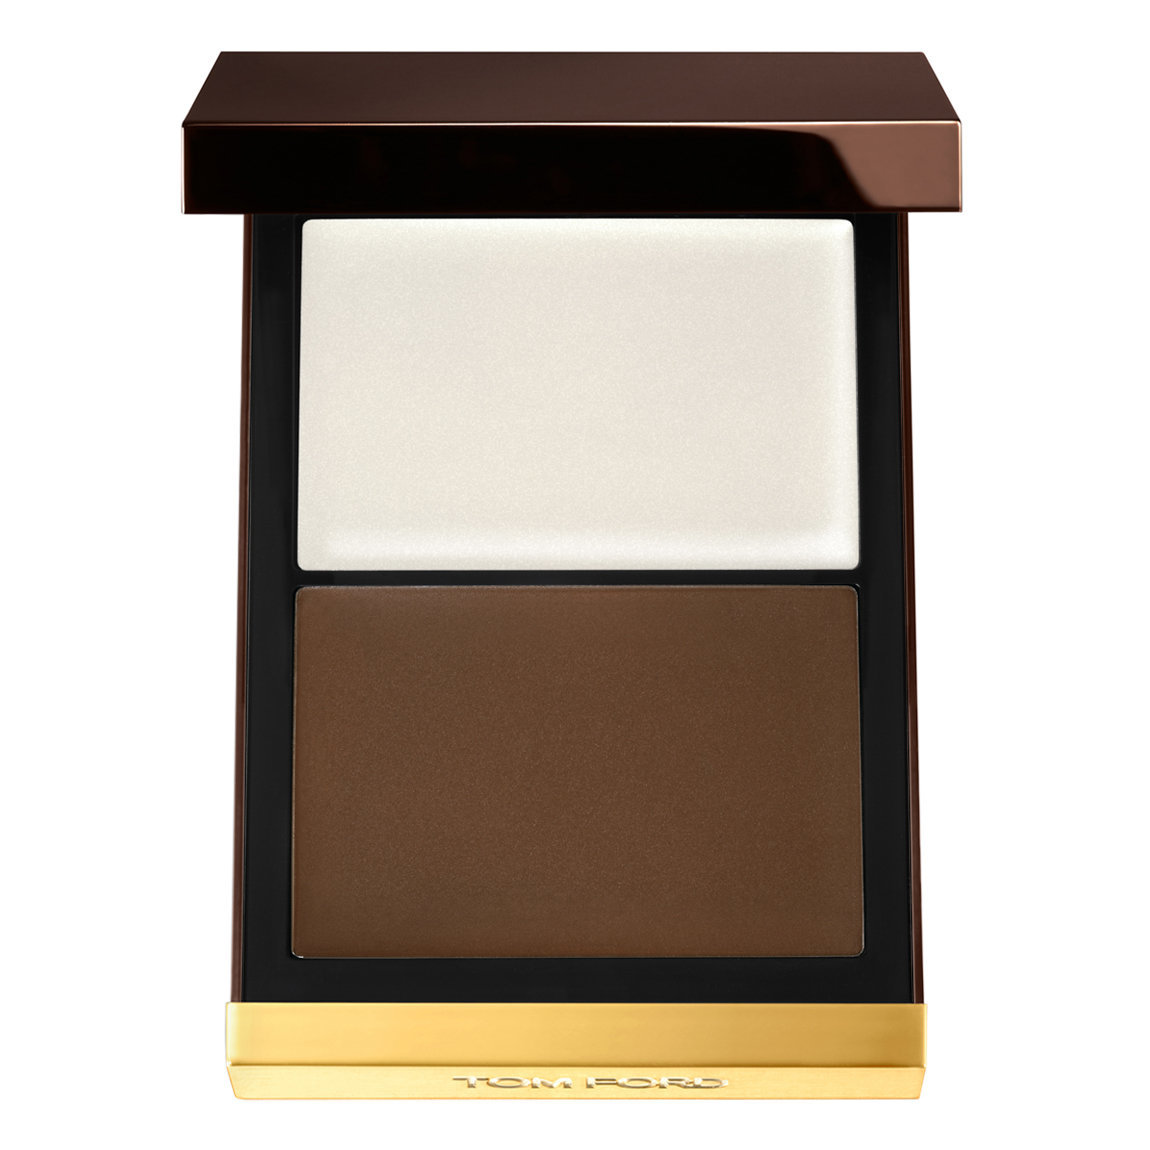 TOM FORD Shade and Illuminate Intensity 03 alternative view 1 - product swatch.